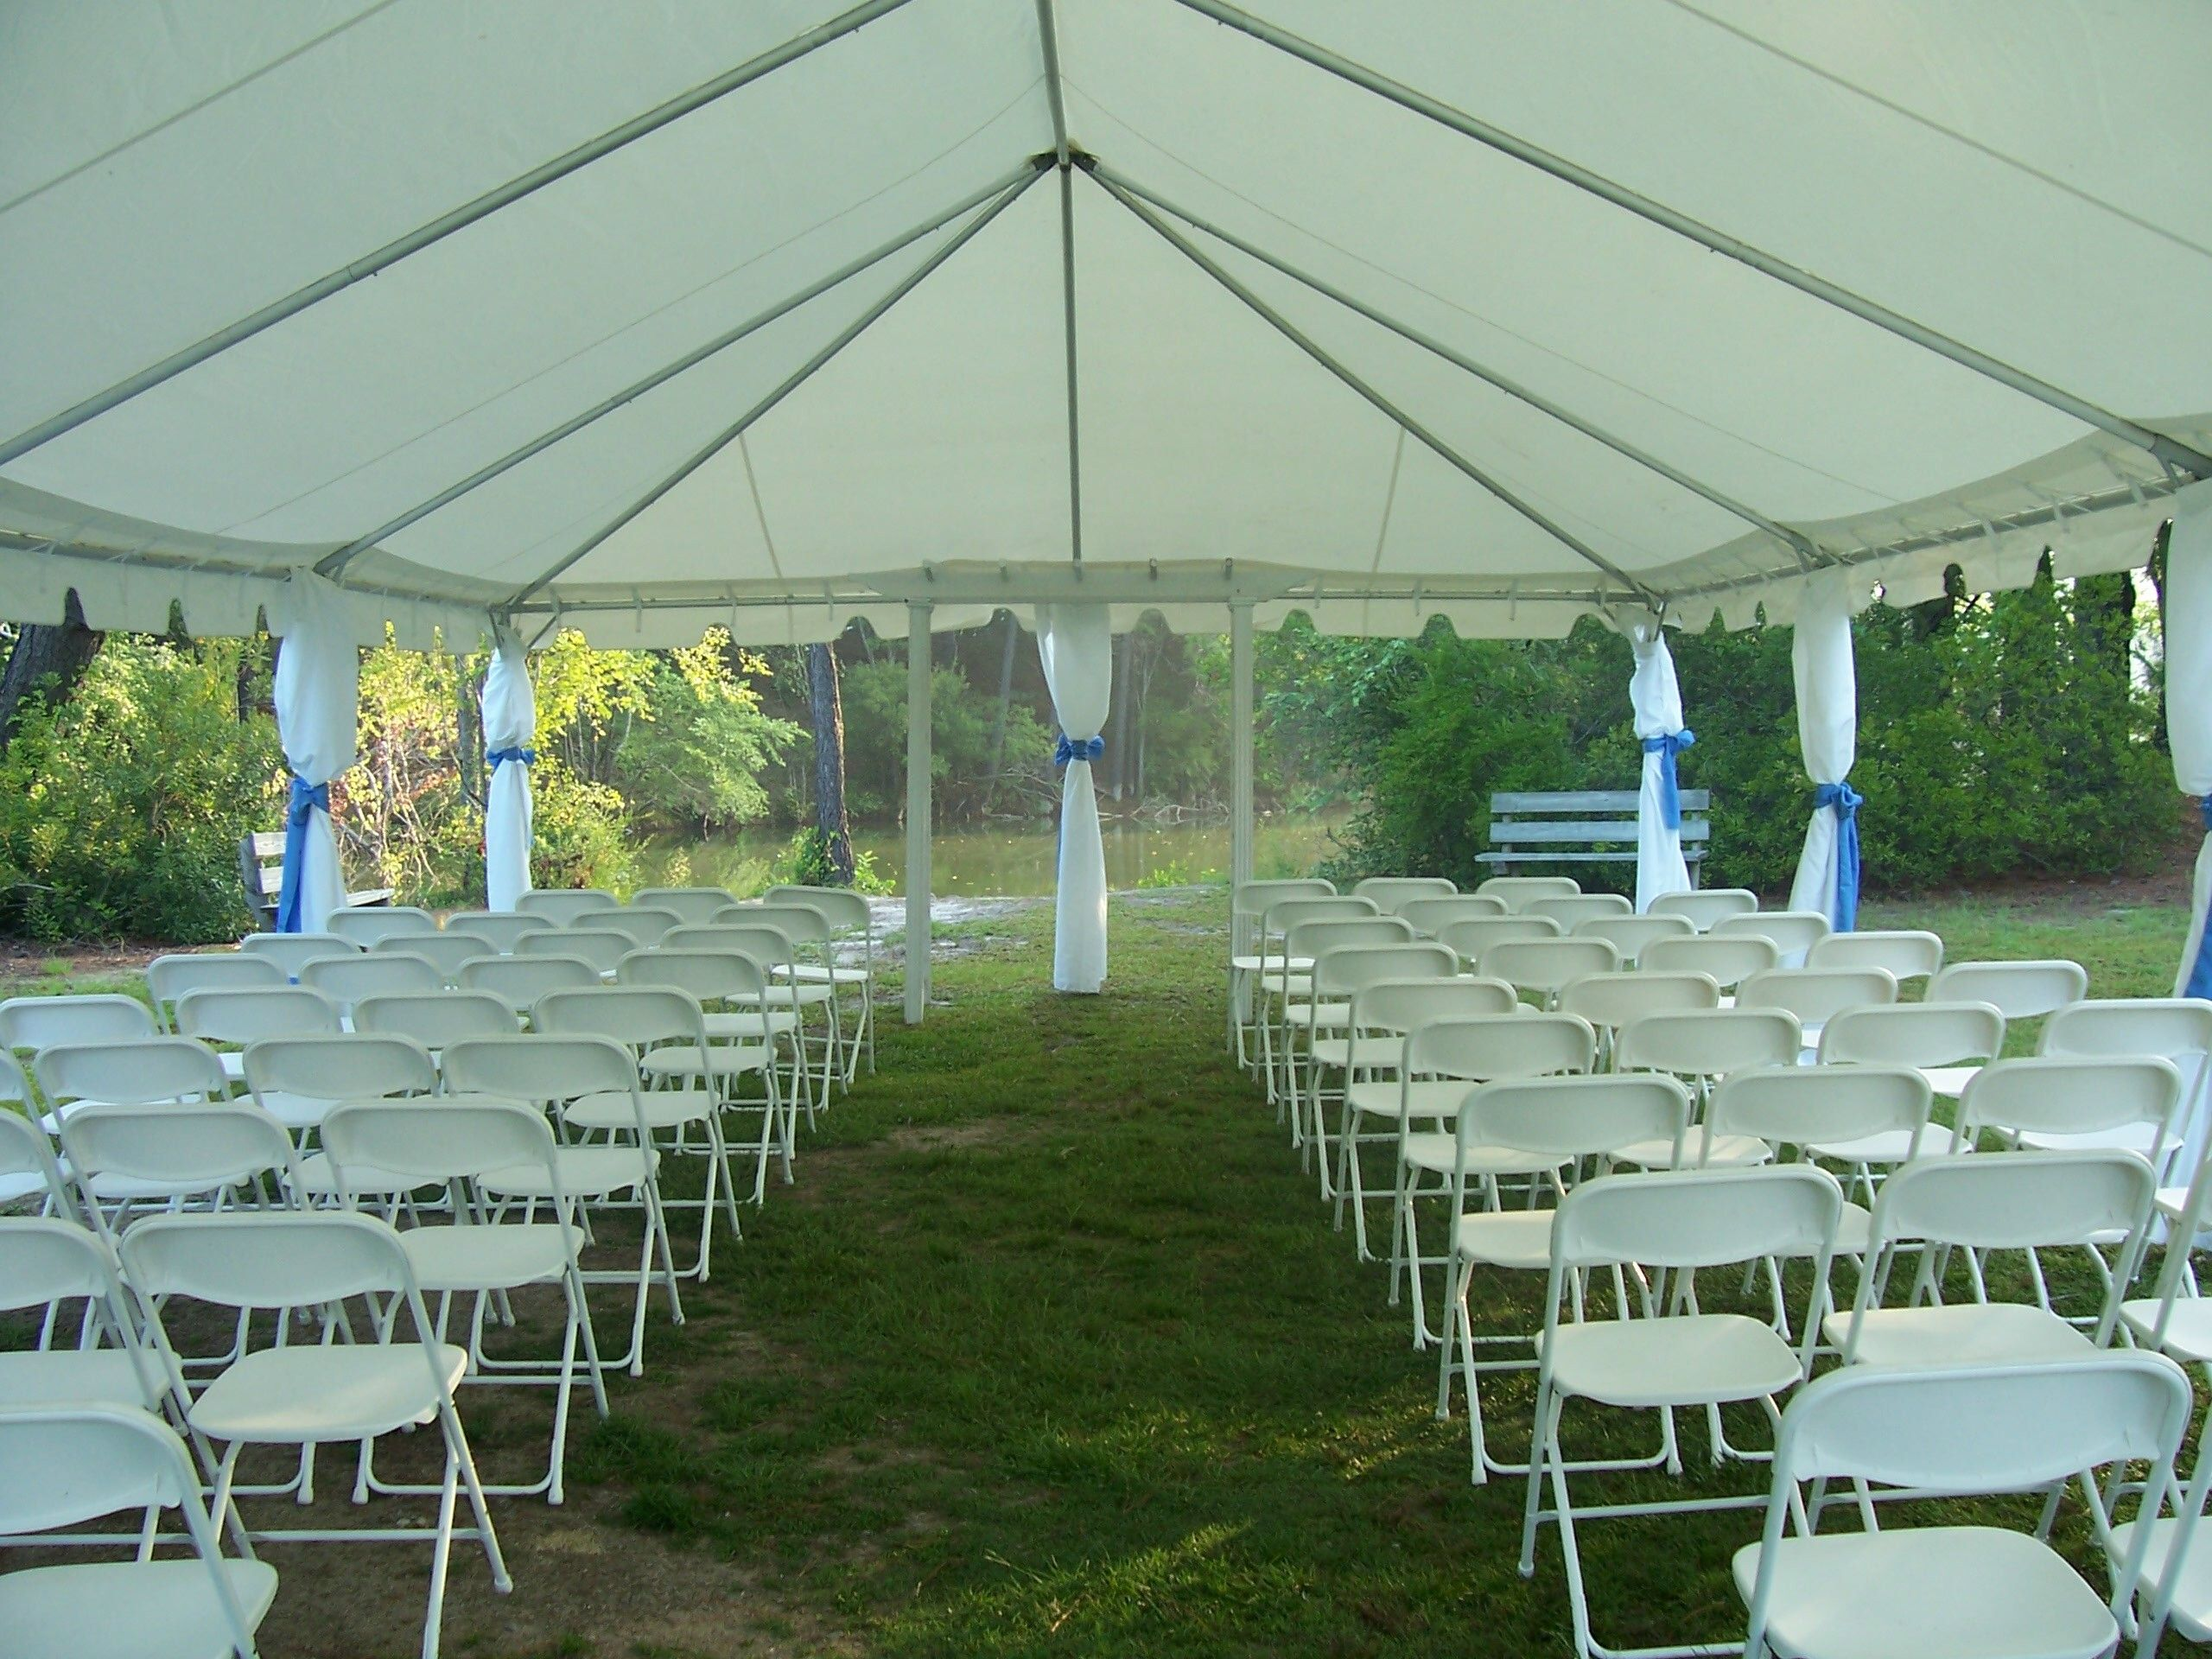 20 X 40 Frame Tent 20 X 40 Frame Tent Tents Tent Wedding